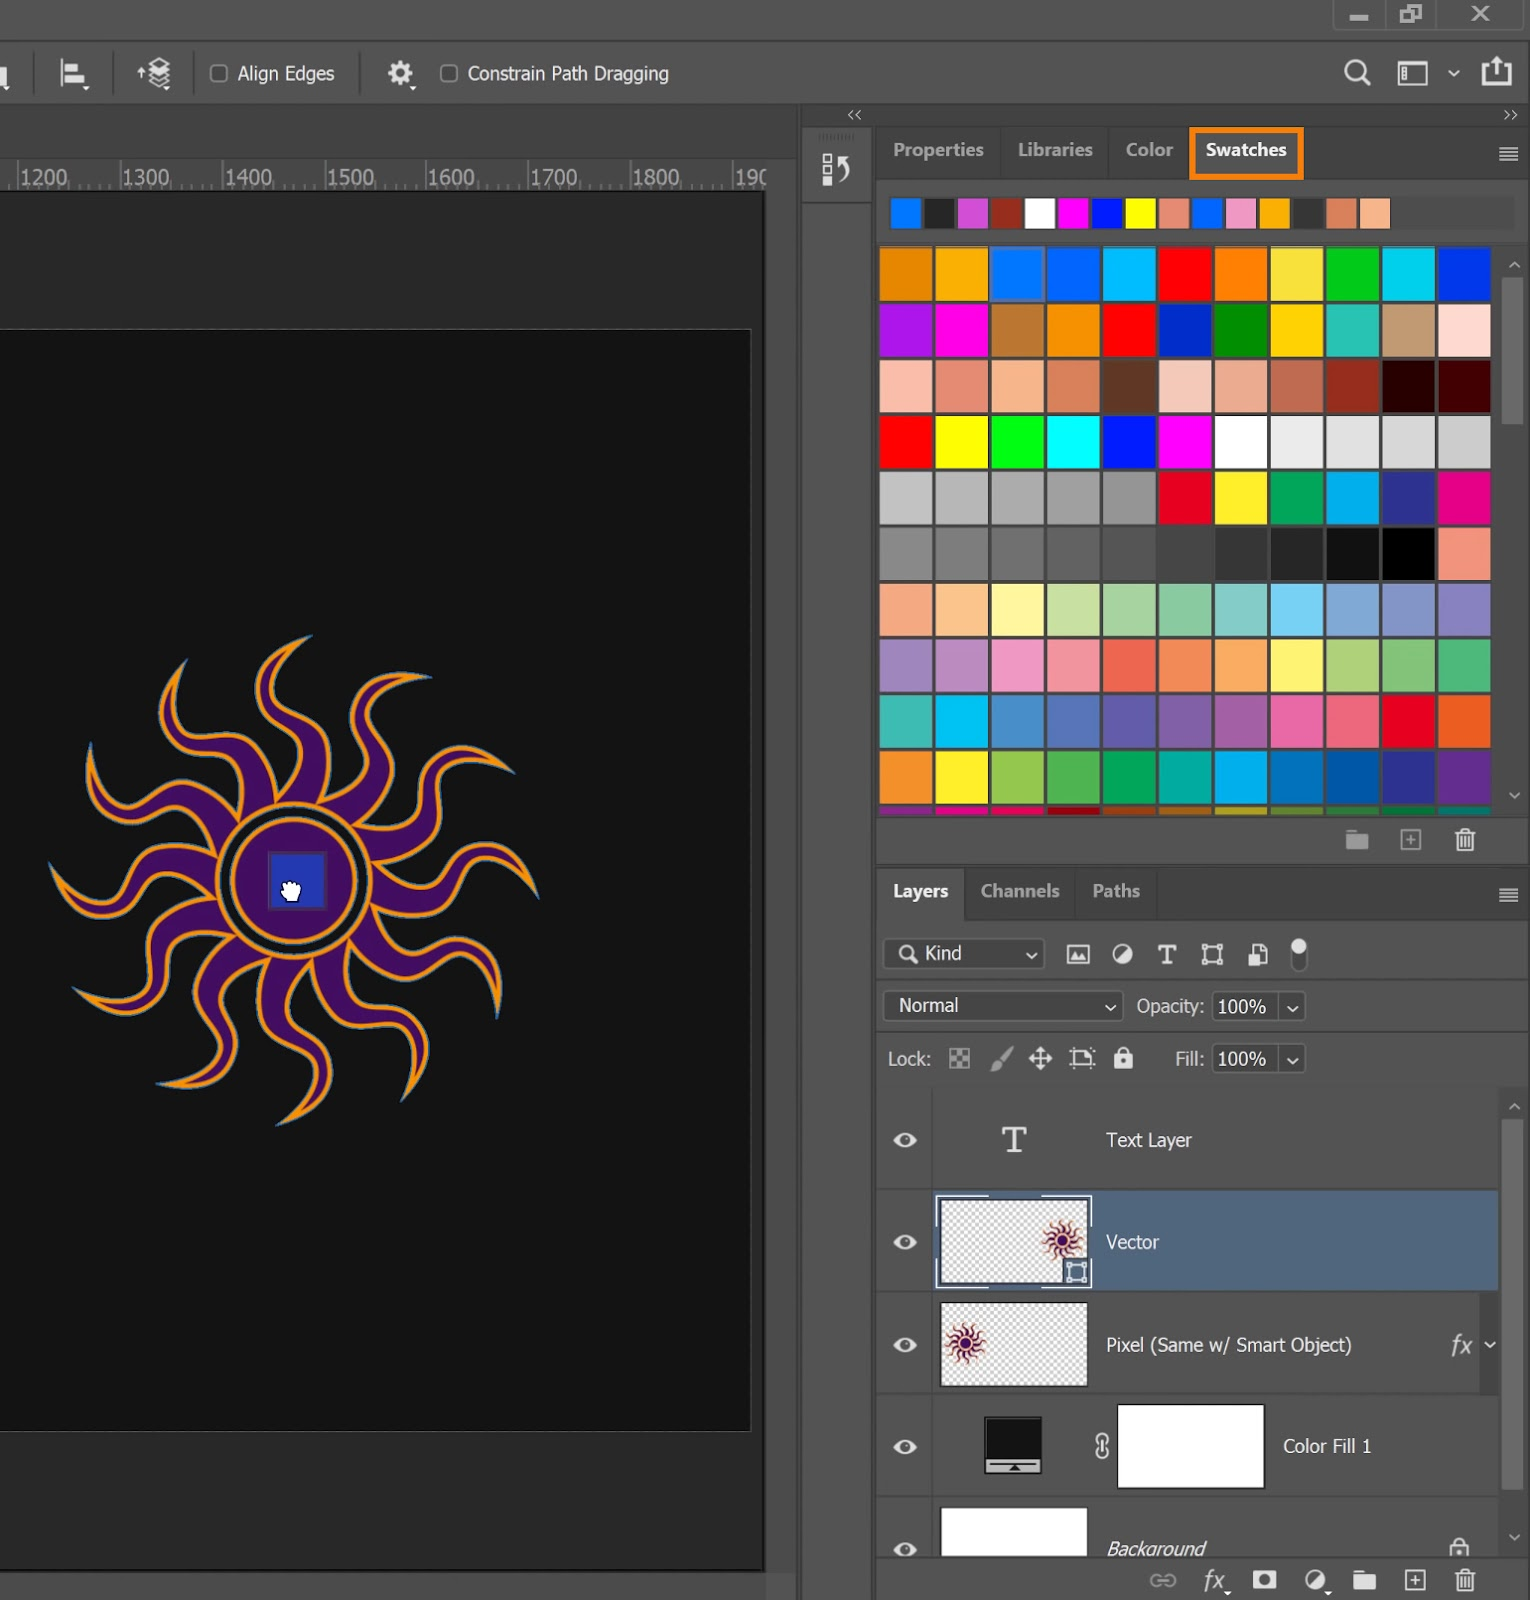 click-and-drag any color and drop it onto the vector shape